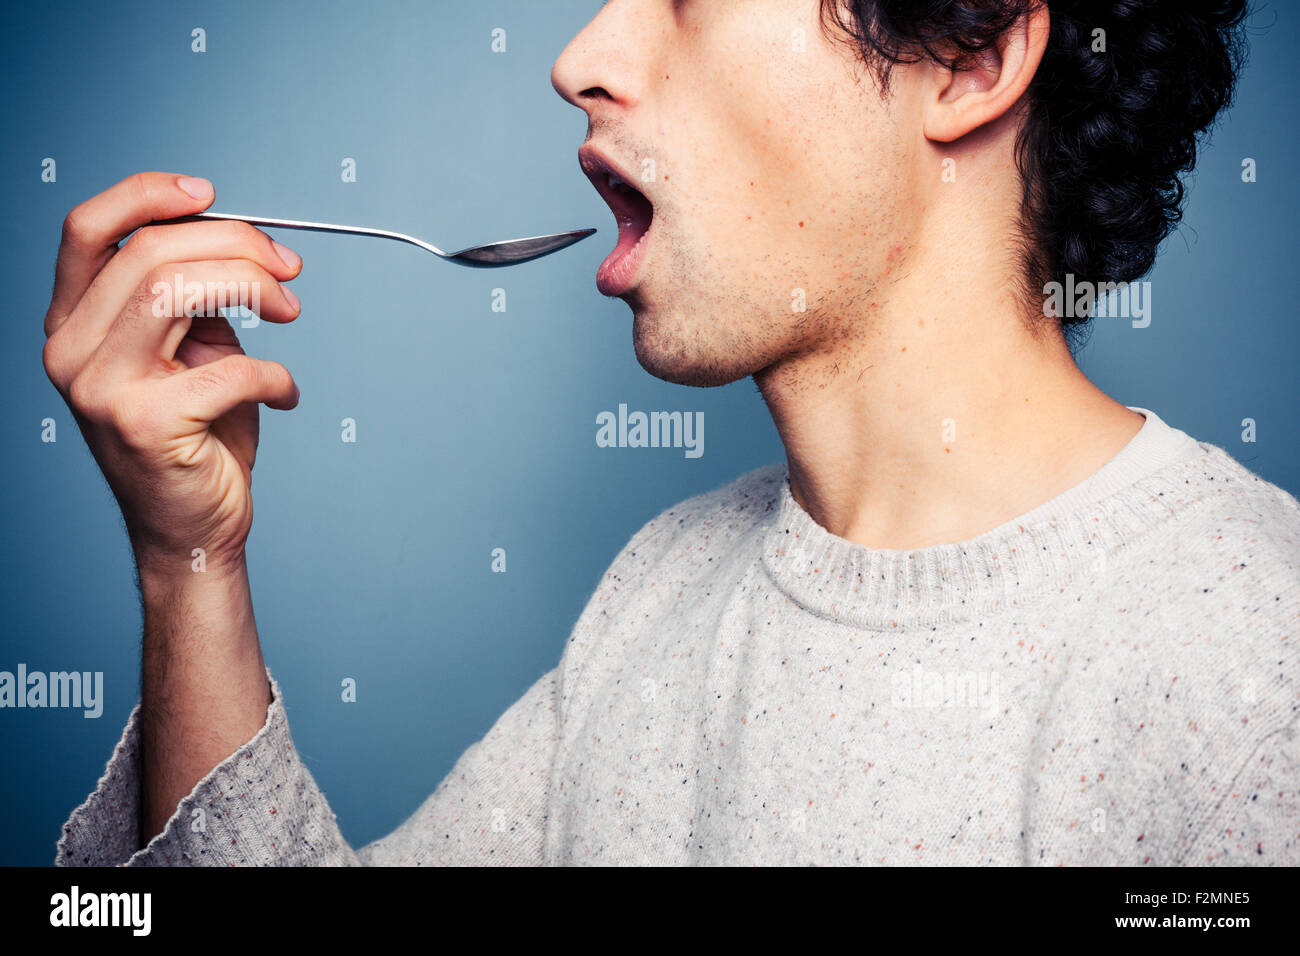 Young man putting spoon in his mouth - Stock Image